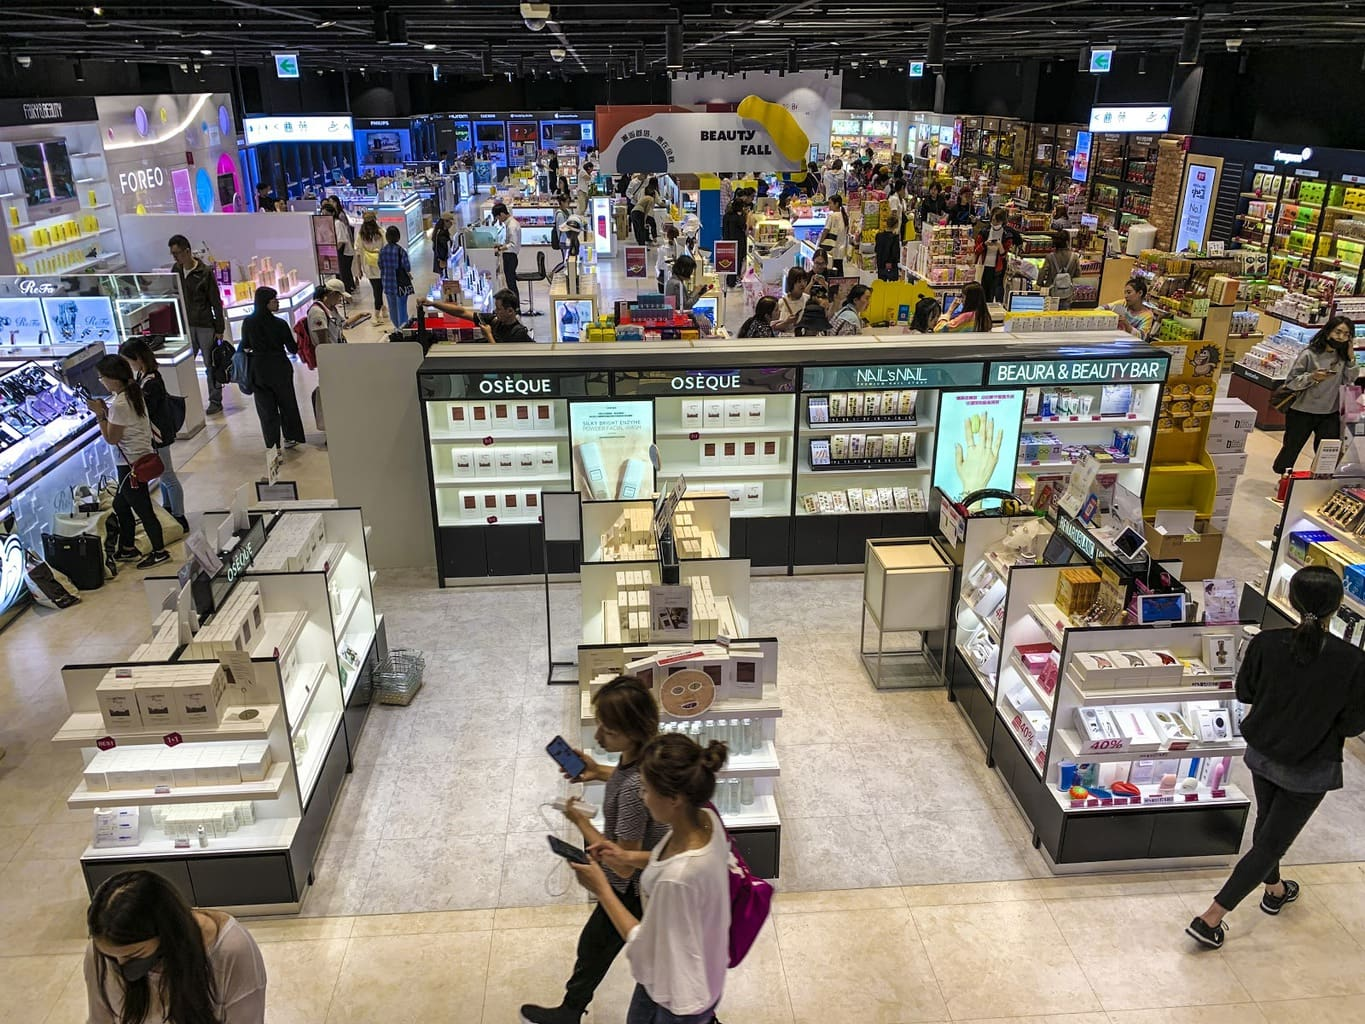 Most department stores have instant duty free services